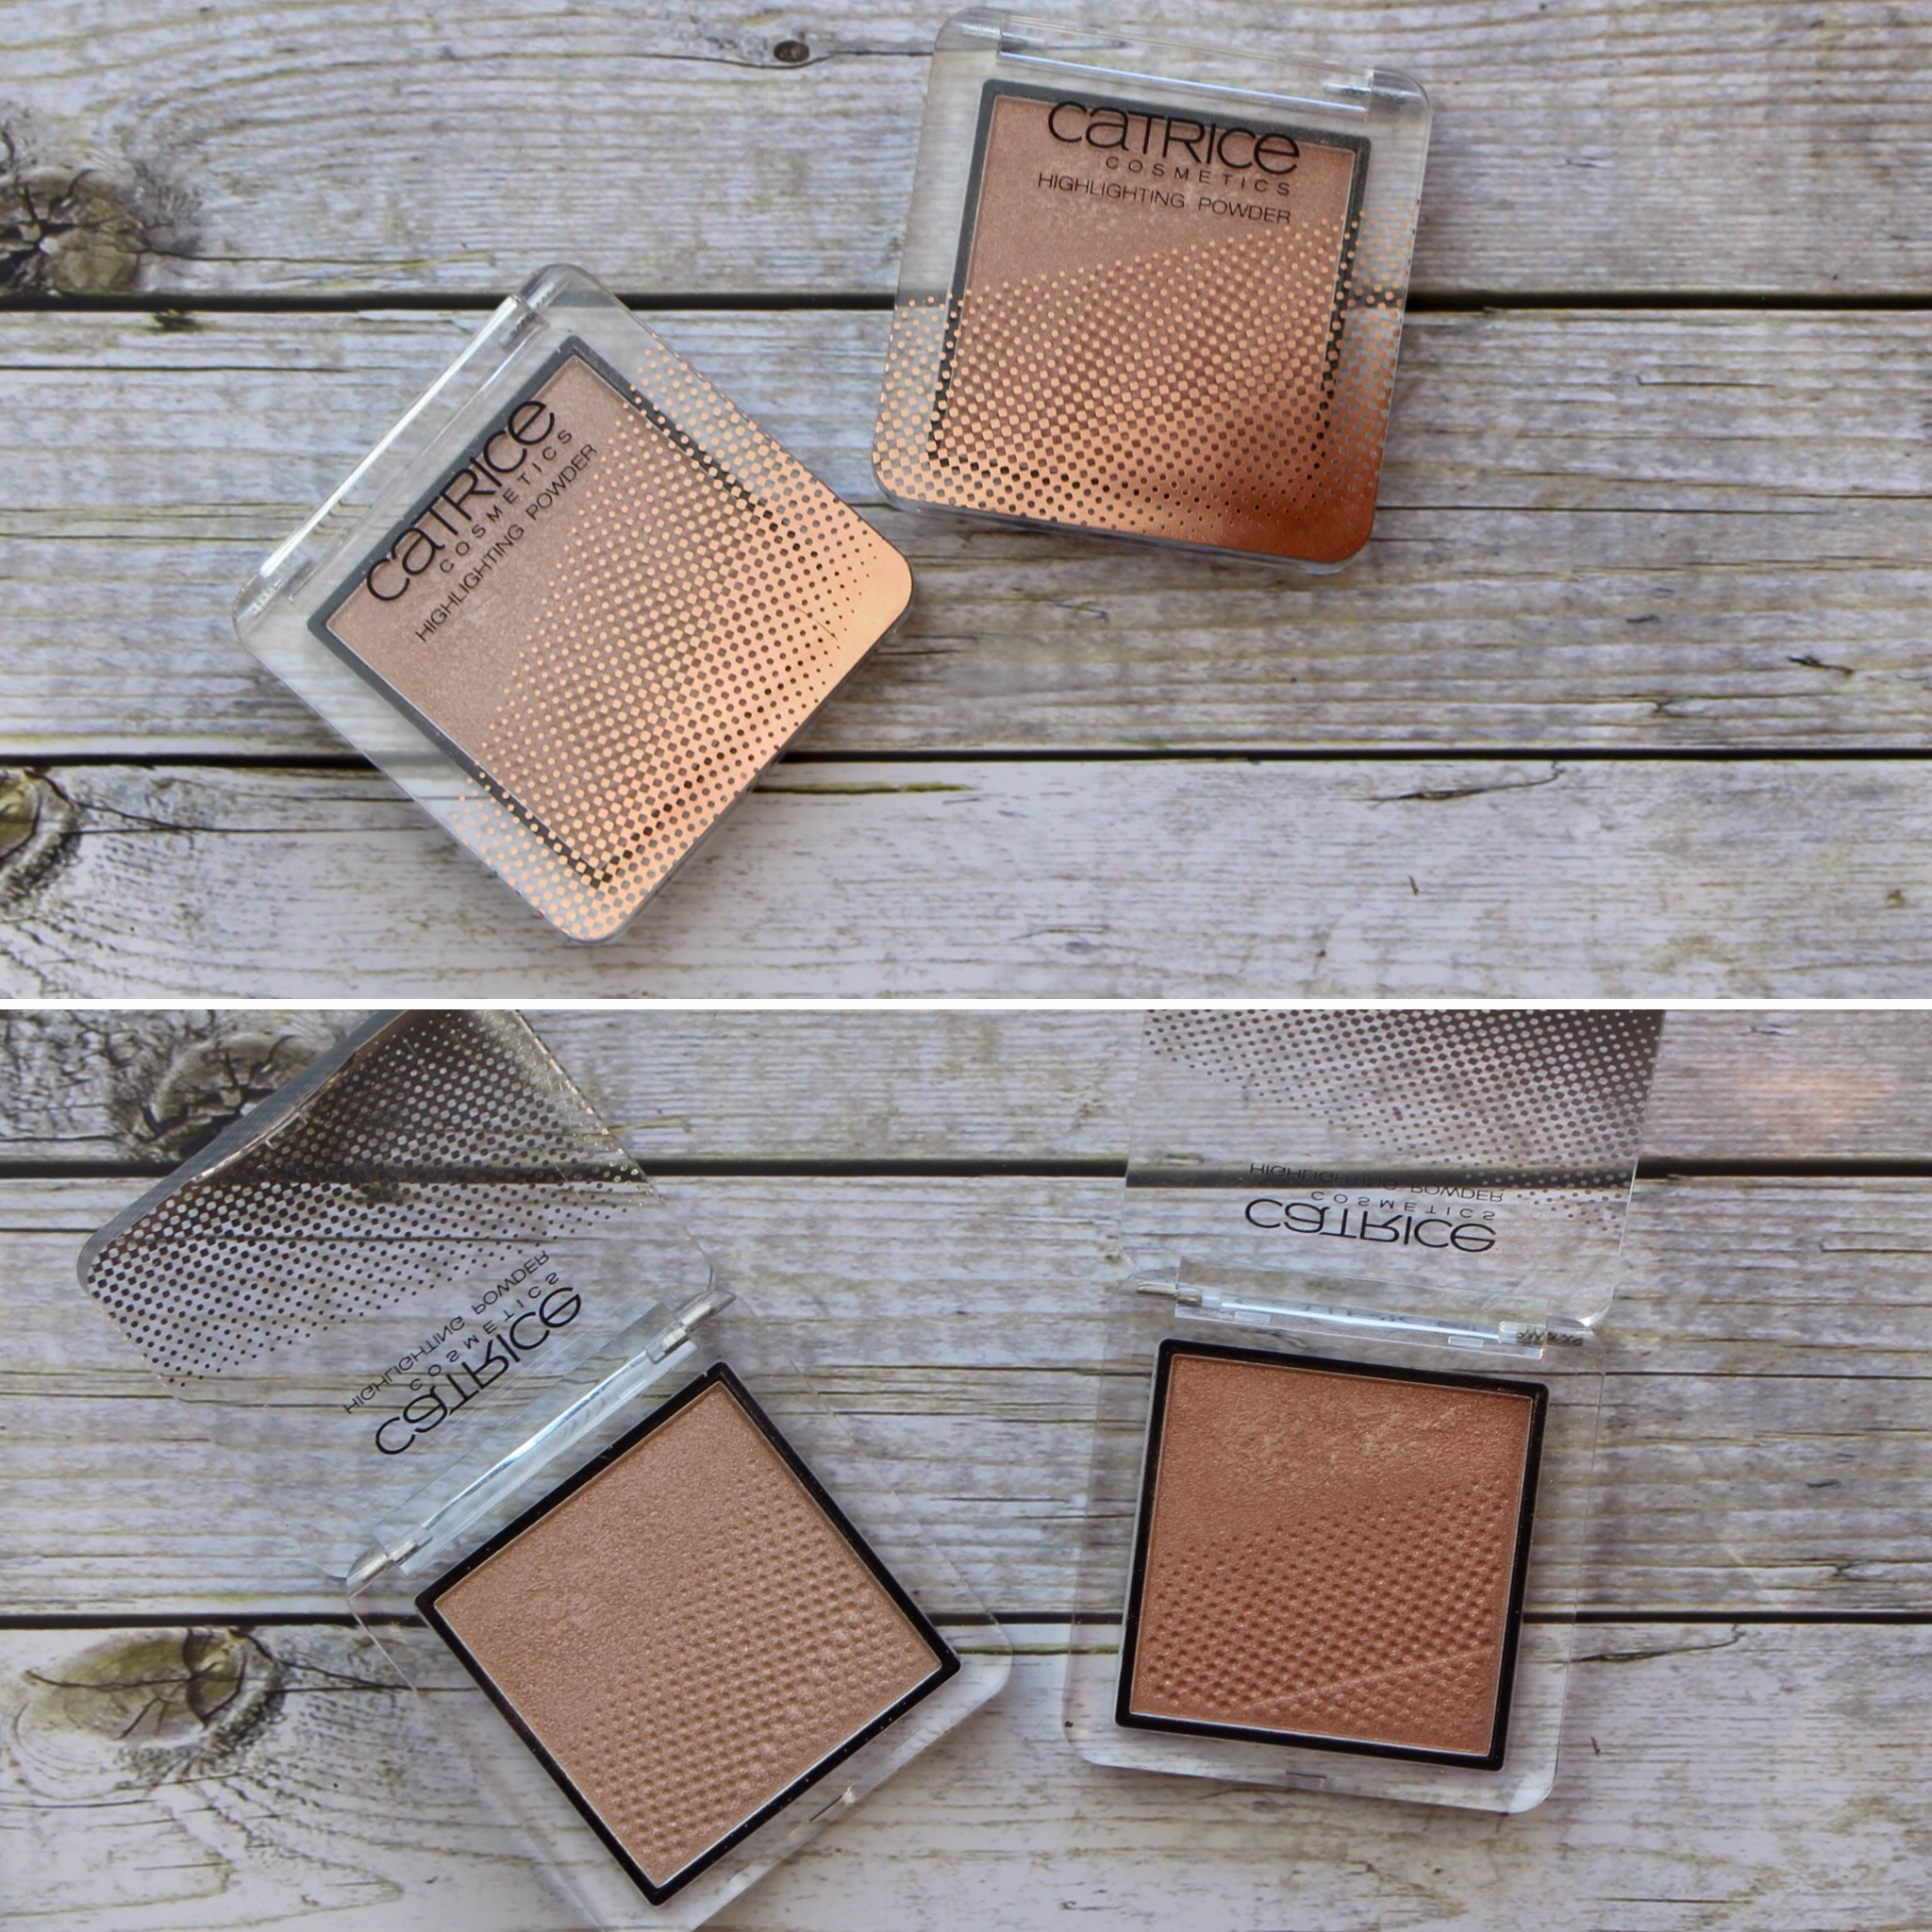 Catrice Prêt-À-Lumière Highlighting Powder